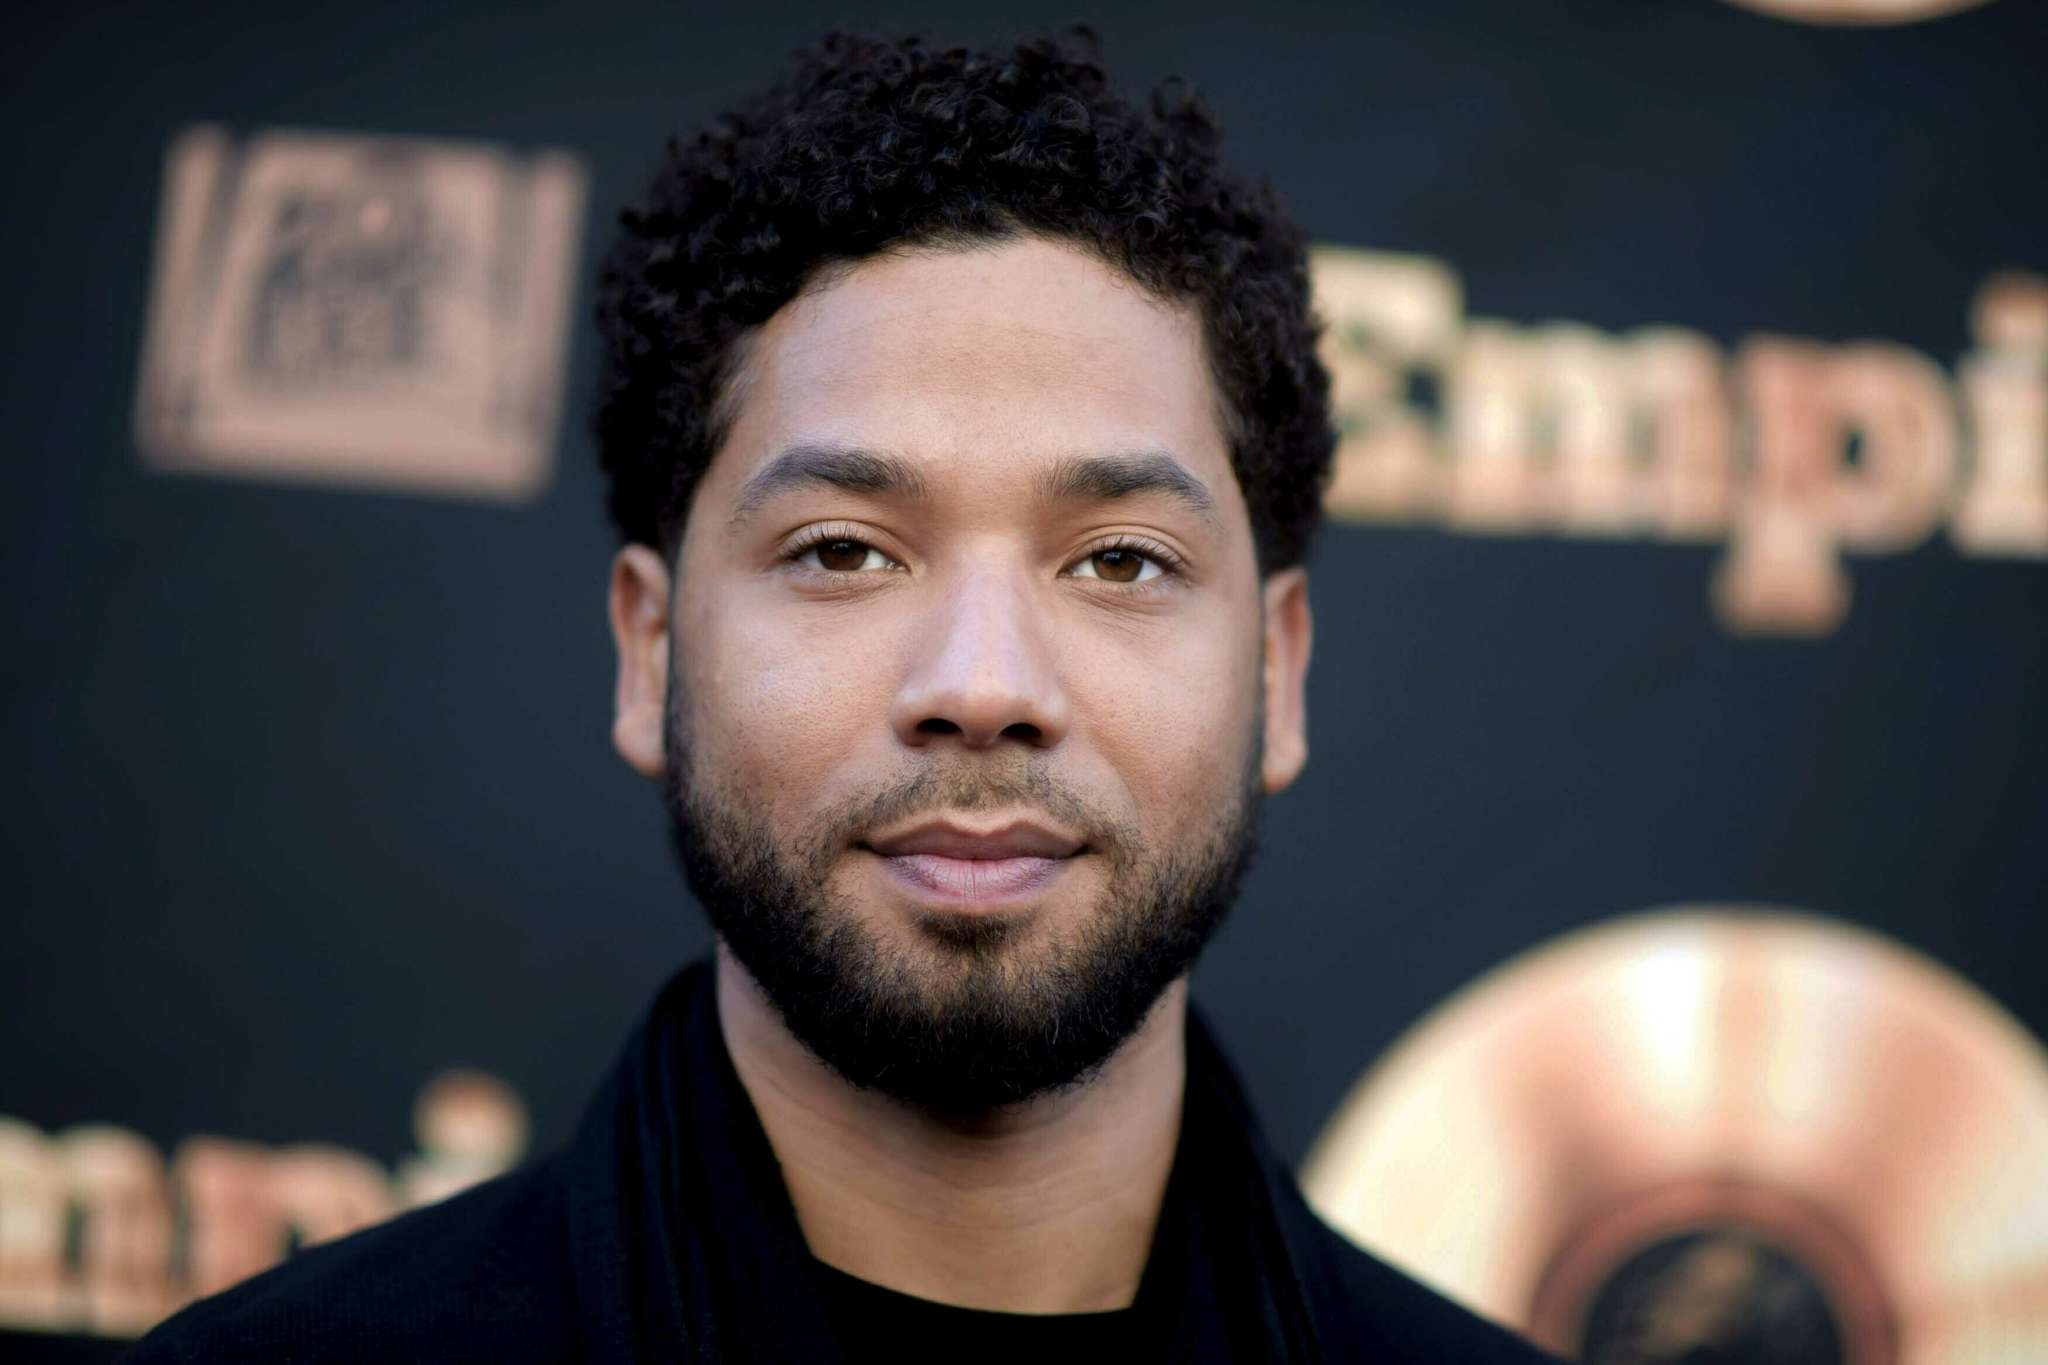 Actor Jussie Smollett charged with filing false police report